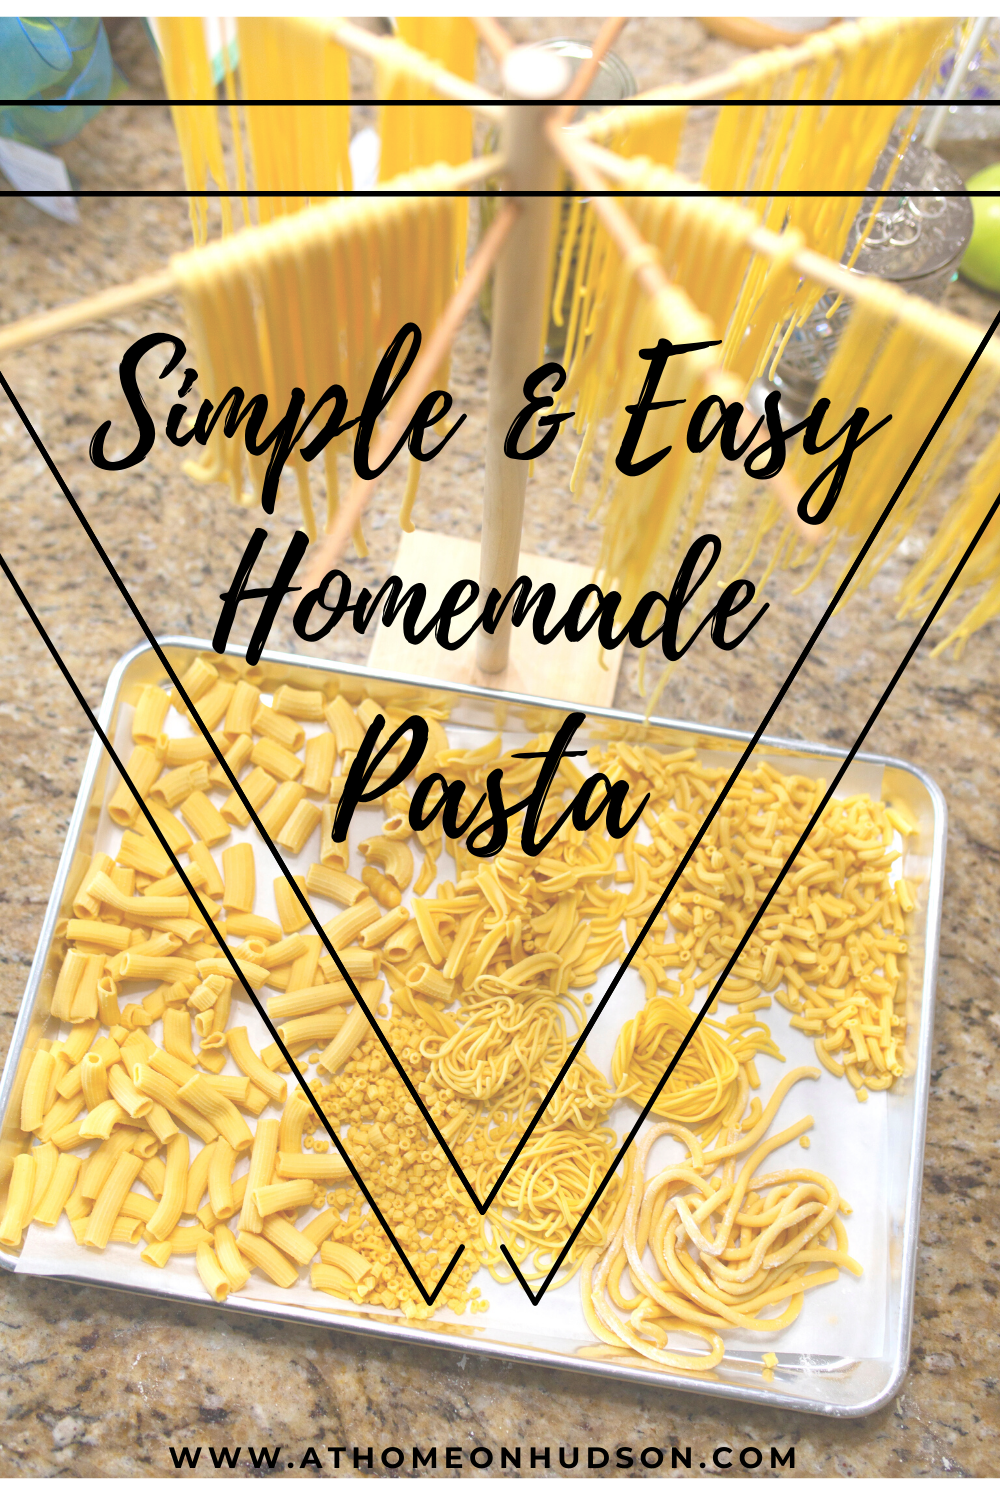 Making your own simple and easy homemade pasta is not only yummy but fun! This is a great activity for all ages. Step-by-step instructions with pictures!